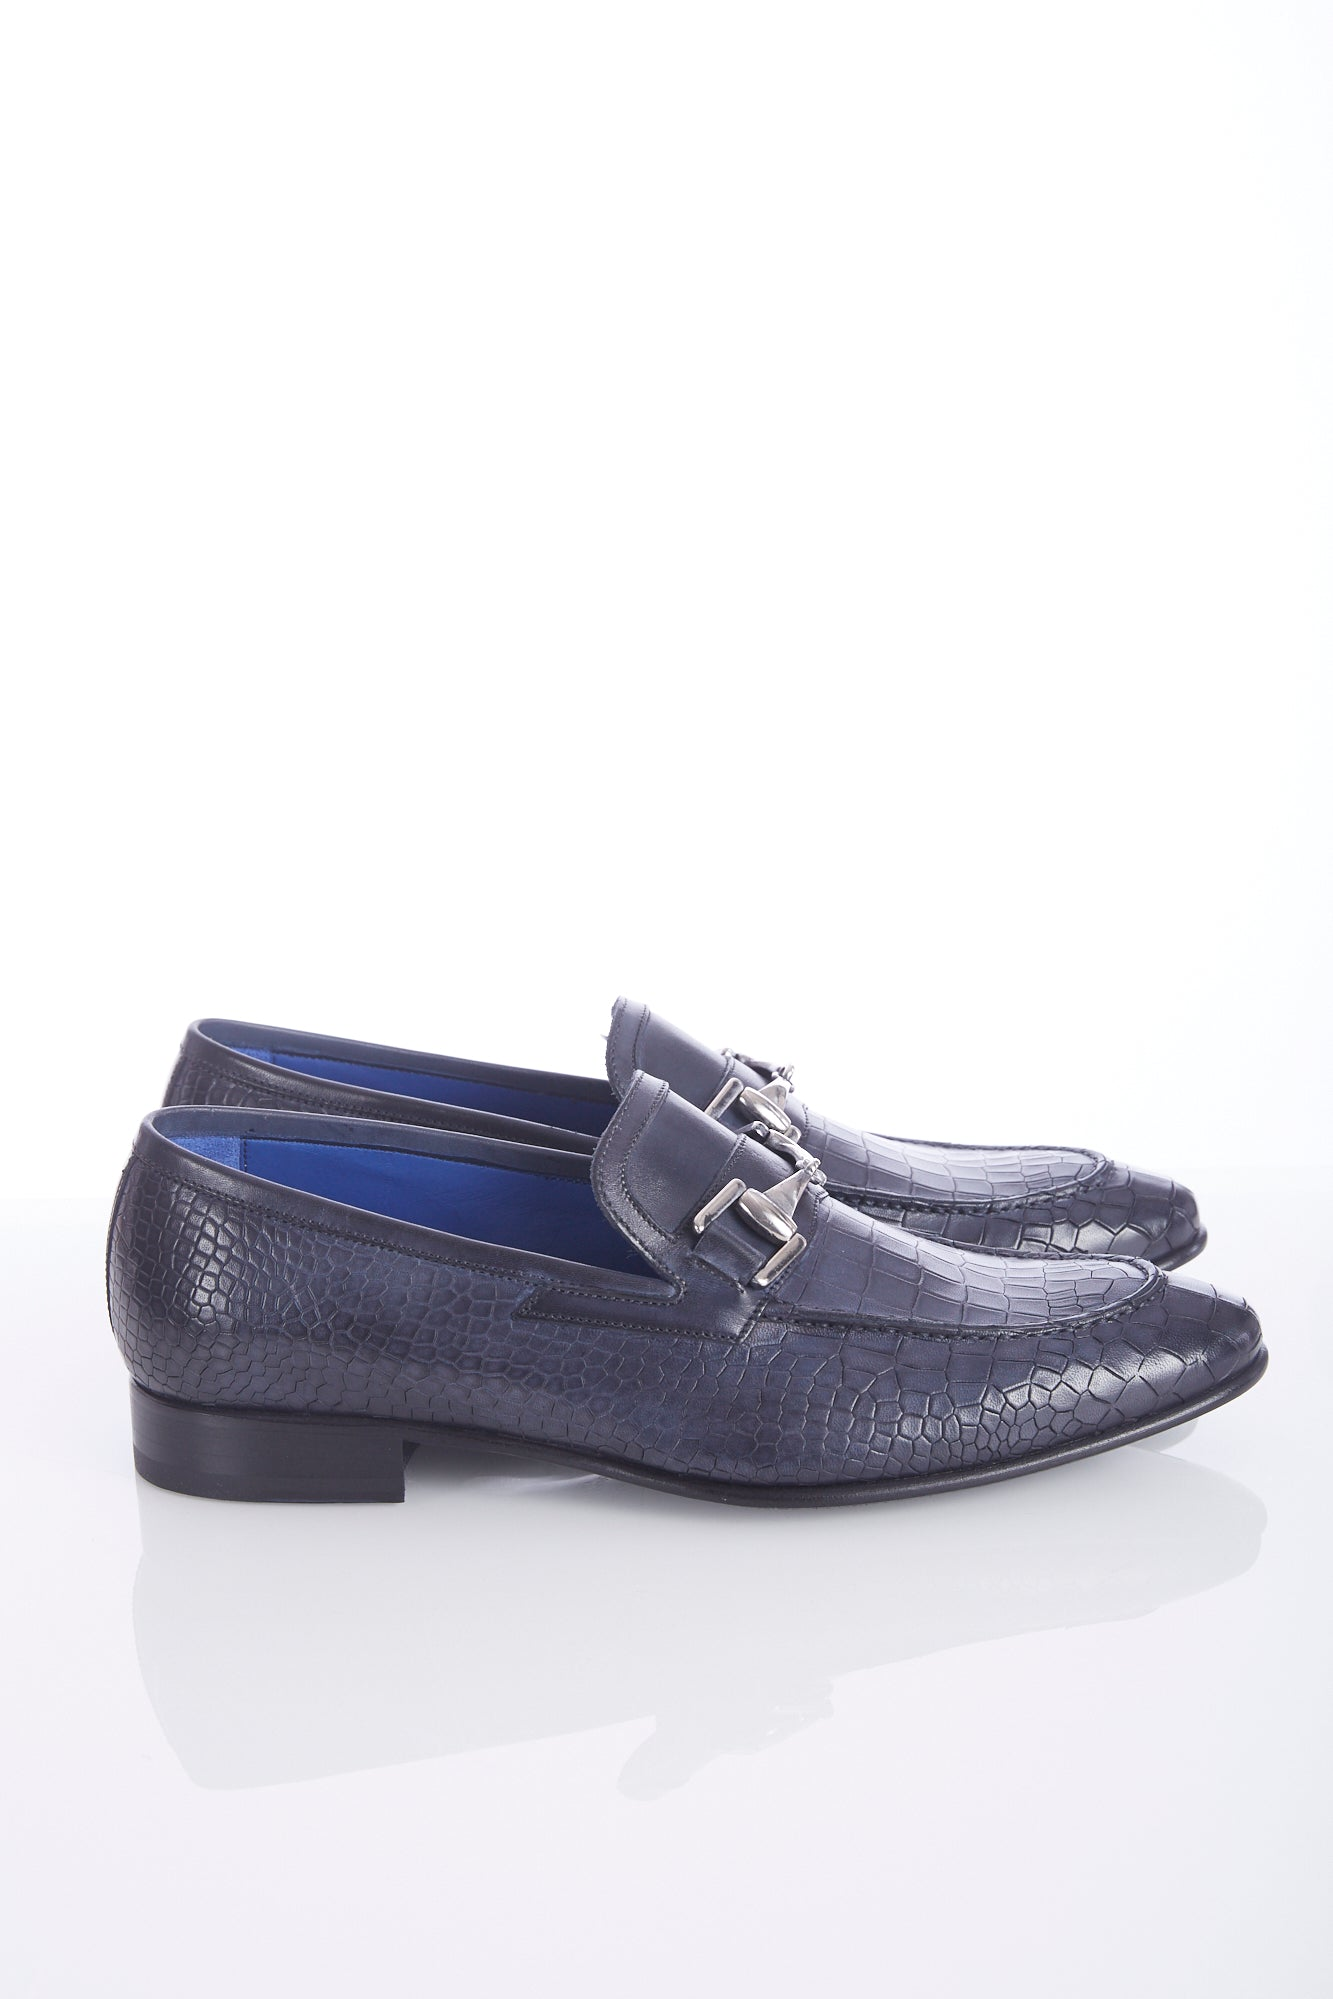 Giulio Moretti Alligator Print Leather Loafer - Shoes - Giulio Moretti - LALONDE's